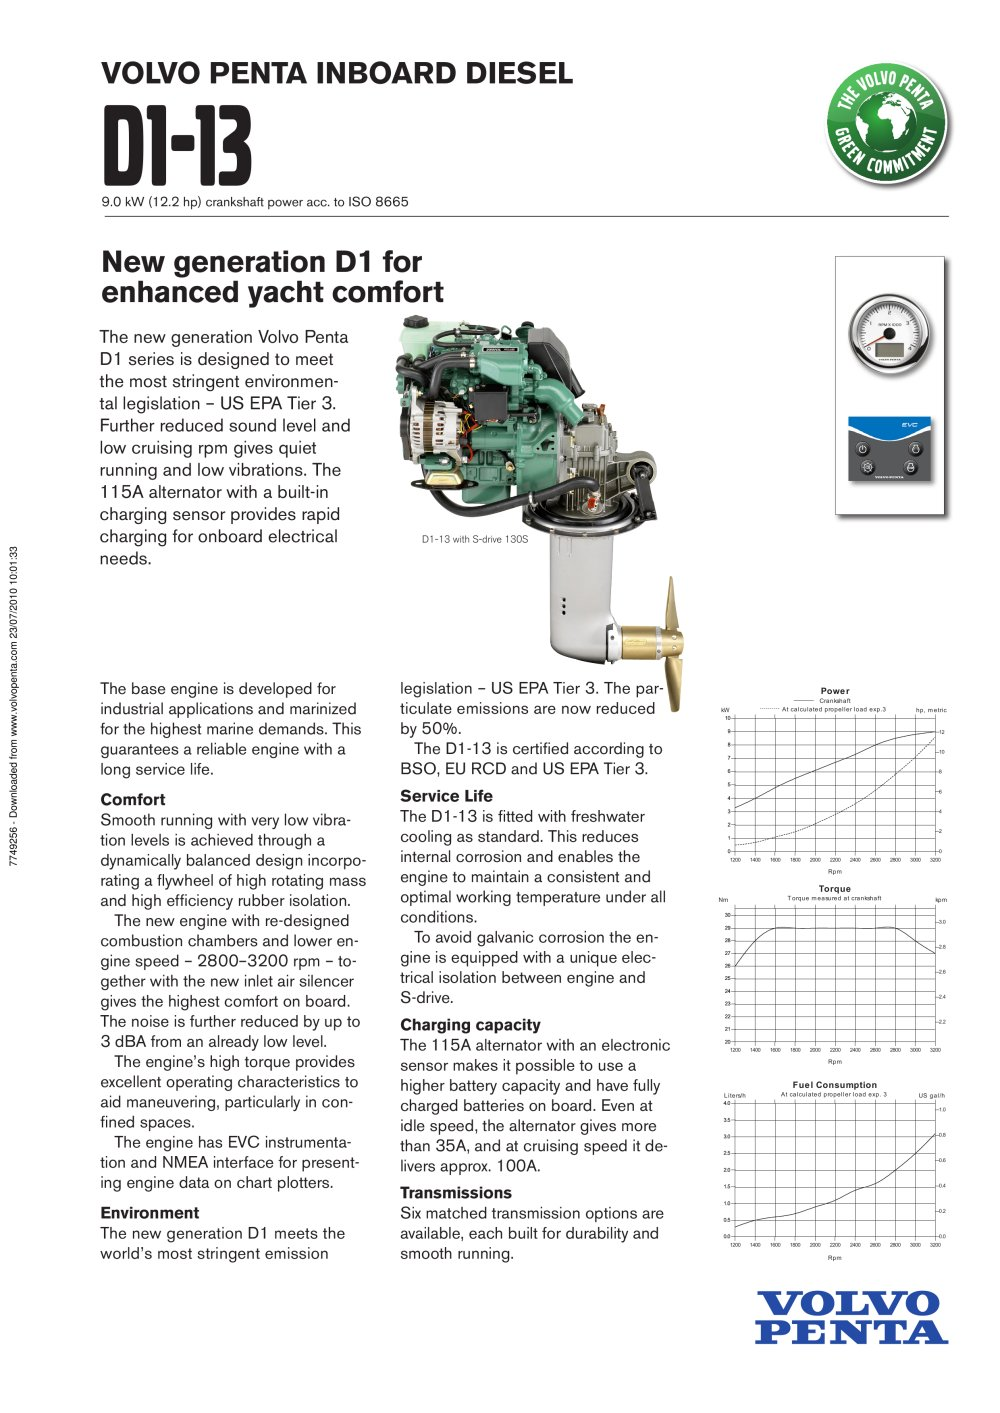 D1 13 Volvo Penta Pdf Catalogues Documentation Boating Brochures 2000 Wiring Diagram 1 2 Pages